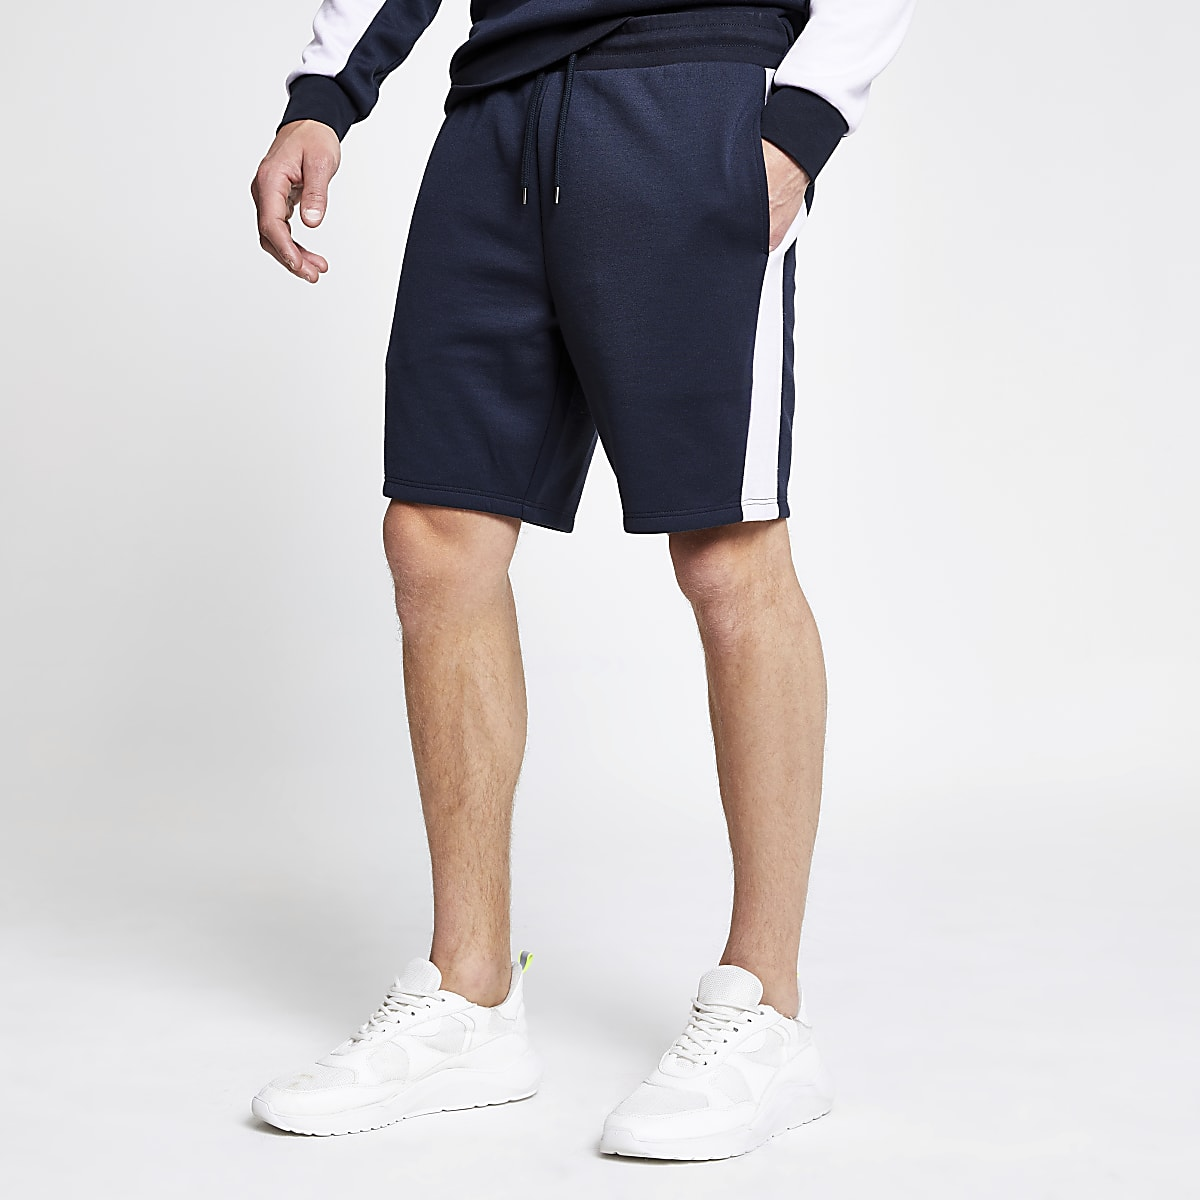 Navy 'Maison Riviera' slim fit jersey shorts